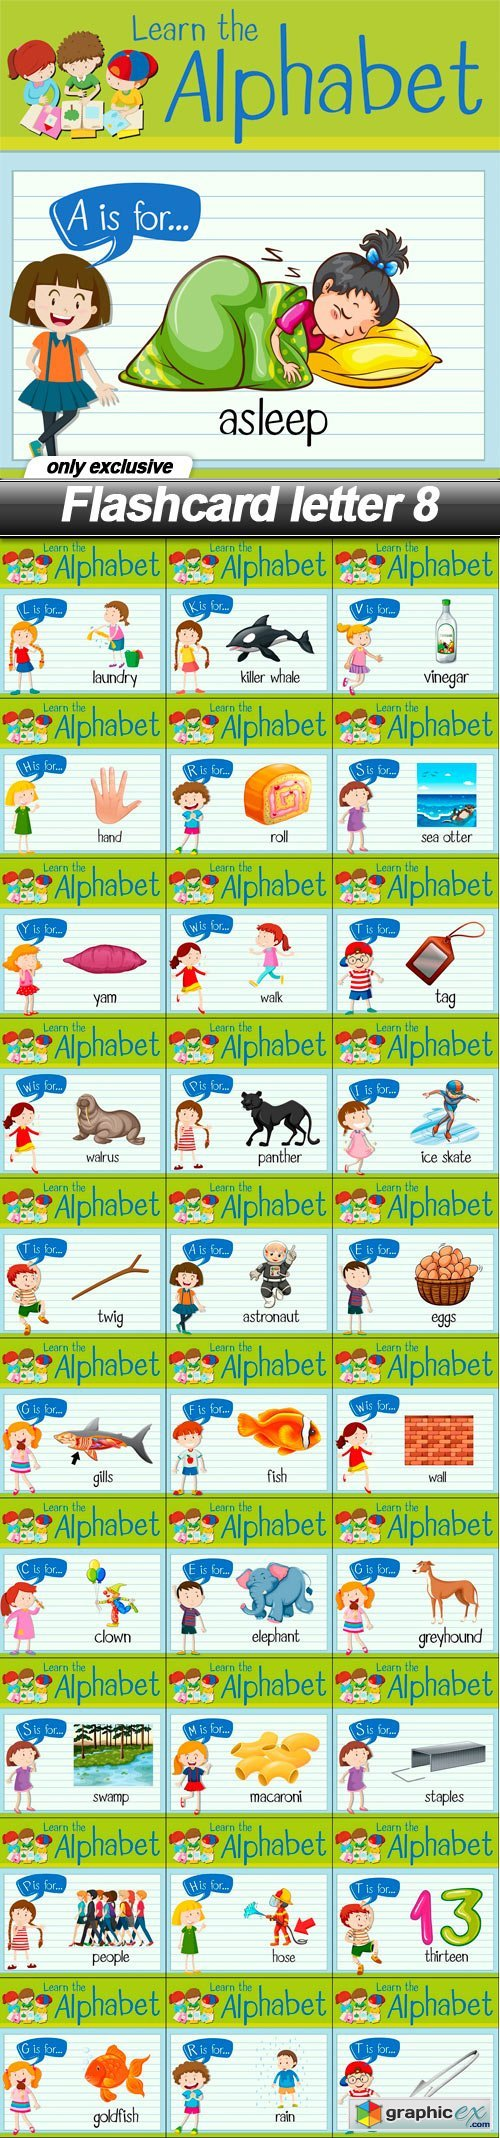 Flashcard letter 8 - 31 EPS